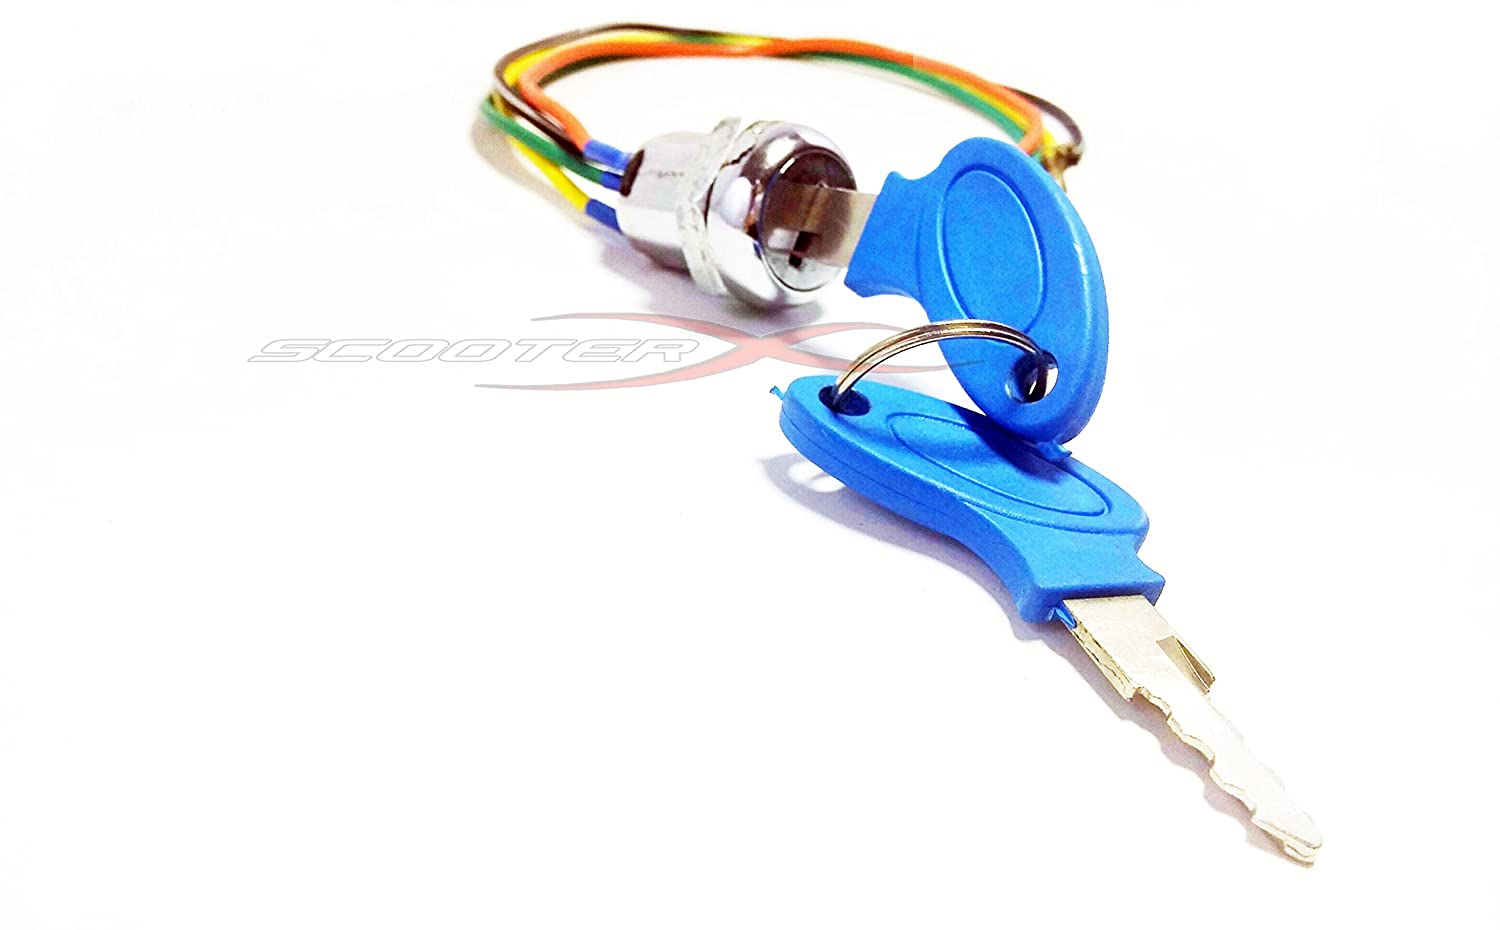 Scooterx 4 Wire Ignition Switch Key Fits Many Gas And Cool Sport Chopper Pocket Bike Wiring Diagram Electric Scooters Go Karts Bikes More Sports Scooter Wheels